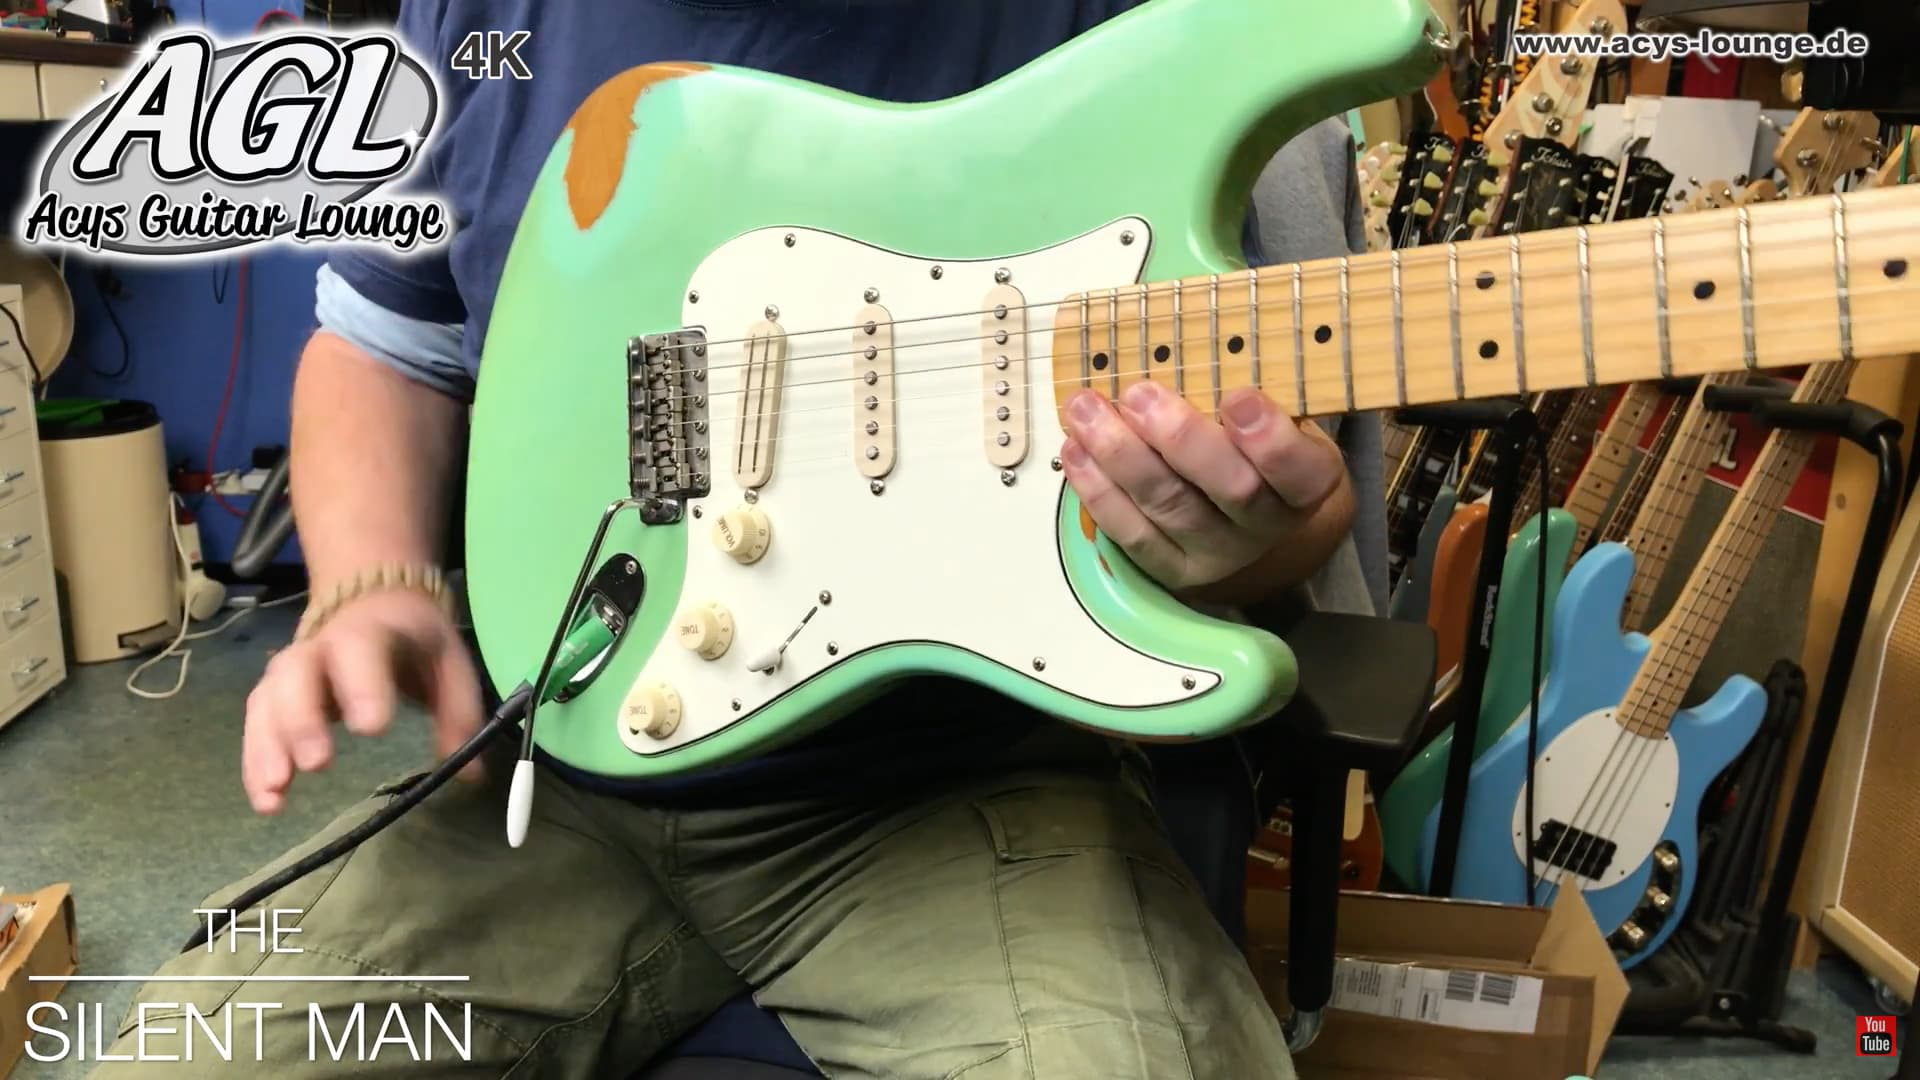 Hss Solo Acys Guitar Lounge Und Hussel Pickups Fat Strat Wiring Fender With Agl